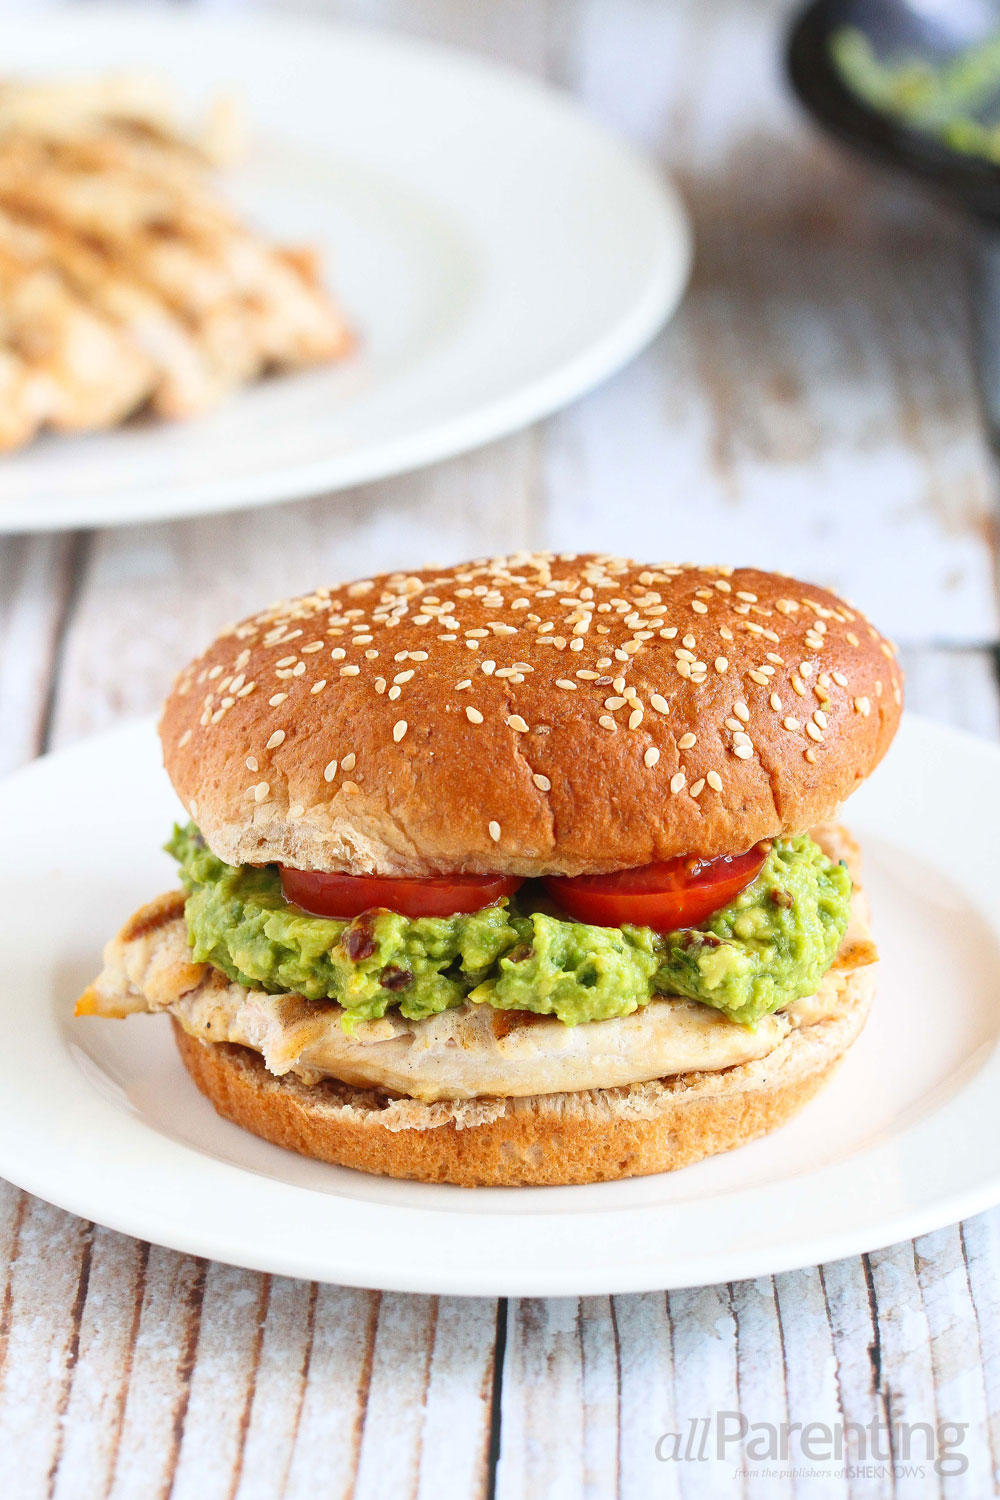 allParenting Grilled chicken burgers with easy guacamole